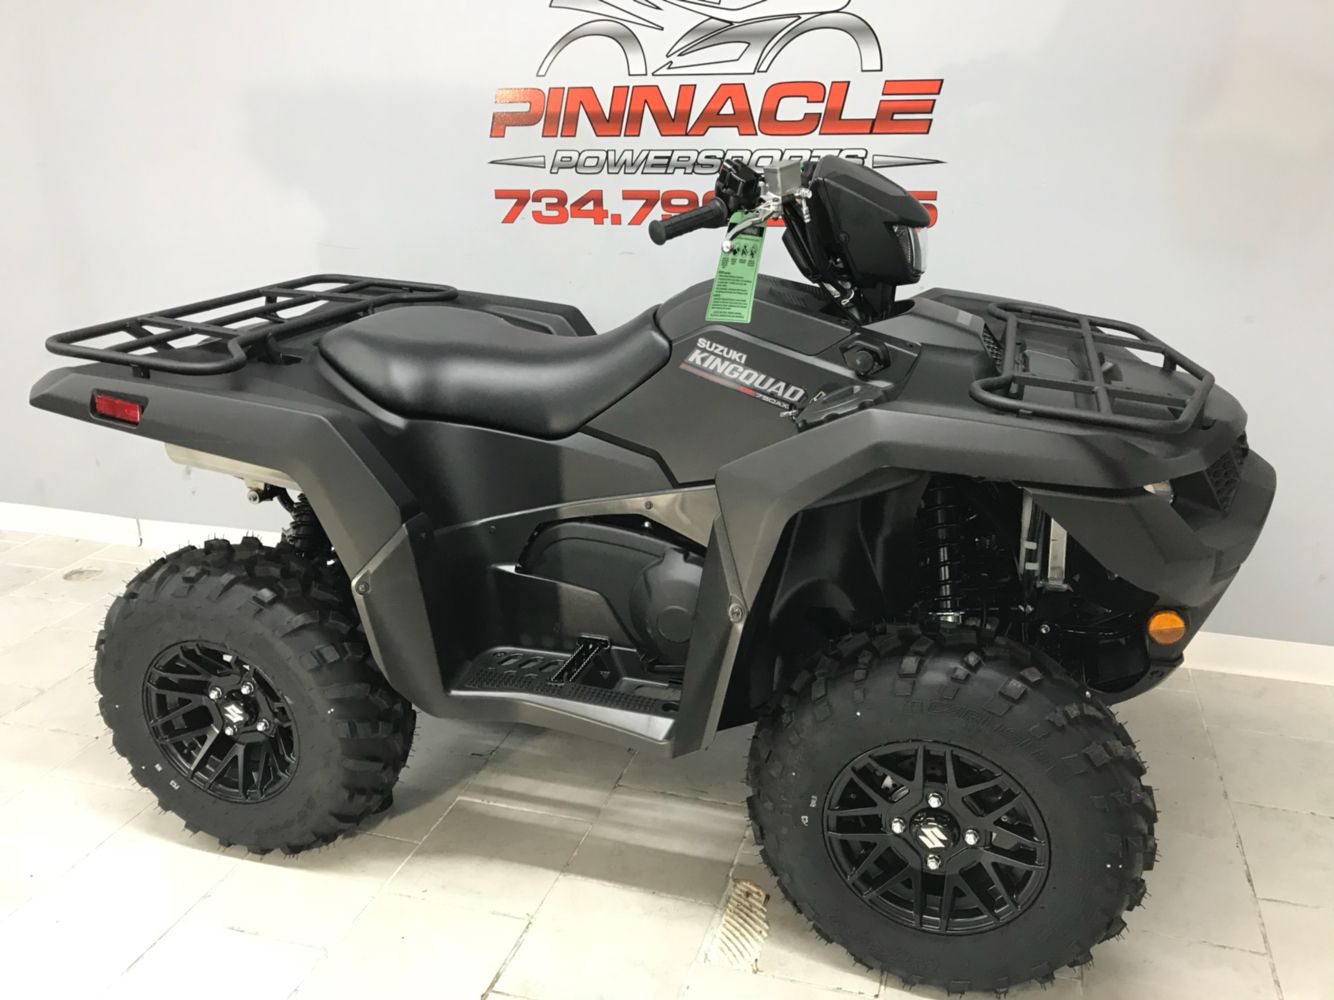 2020 Suzuki KingQuad 750AXi Power Steering SE+ in Belleville, Michigan - Photo 2